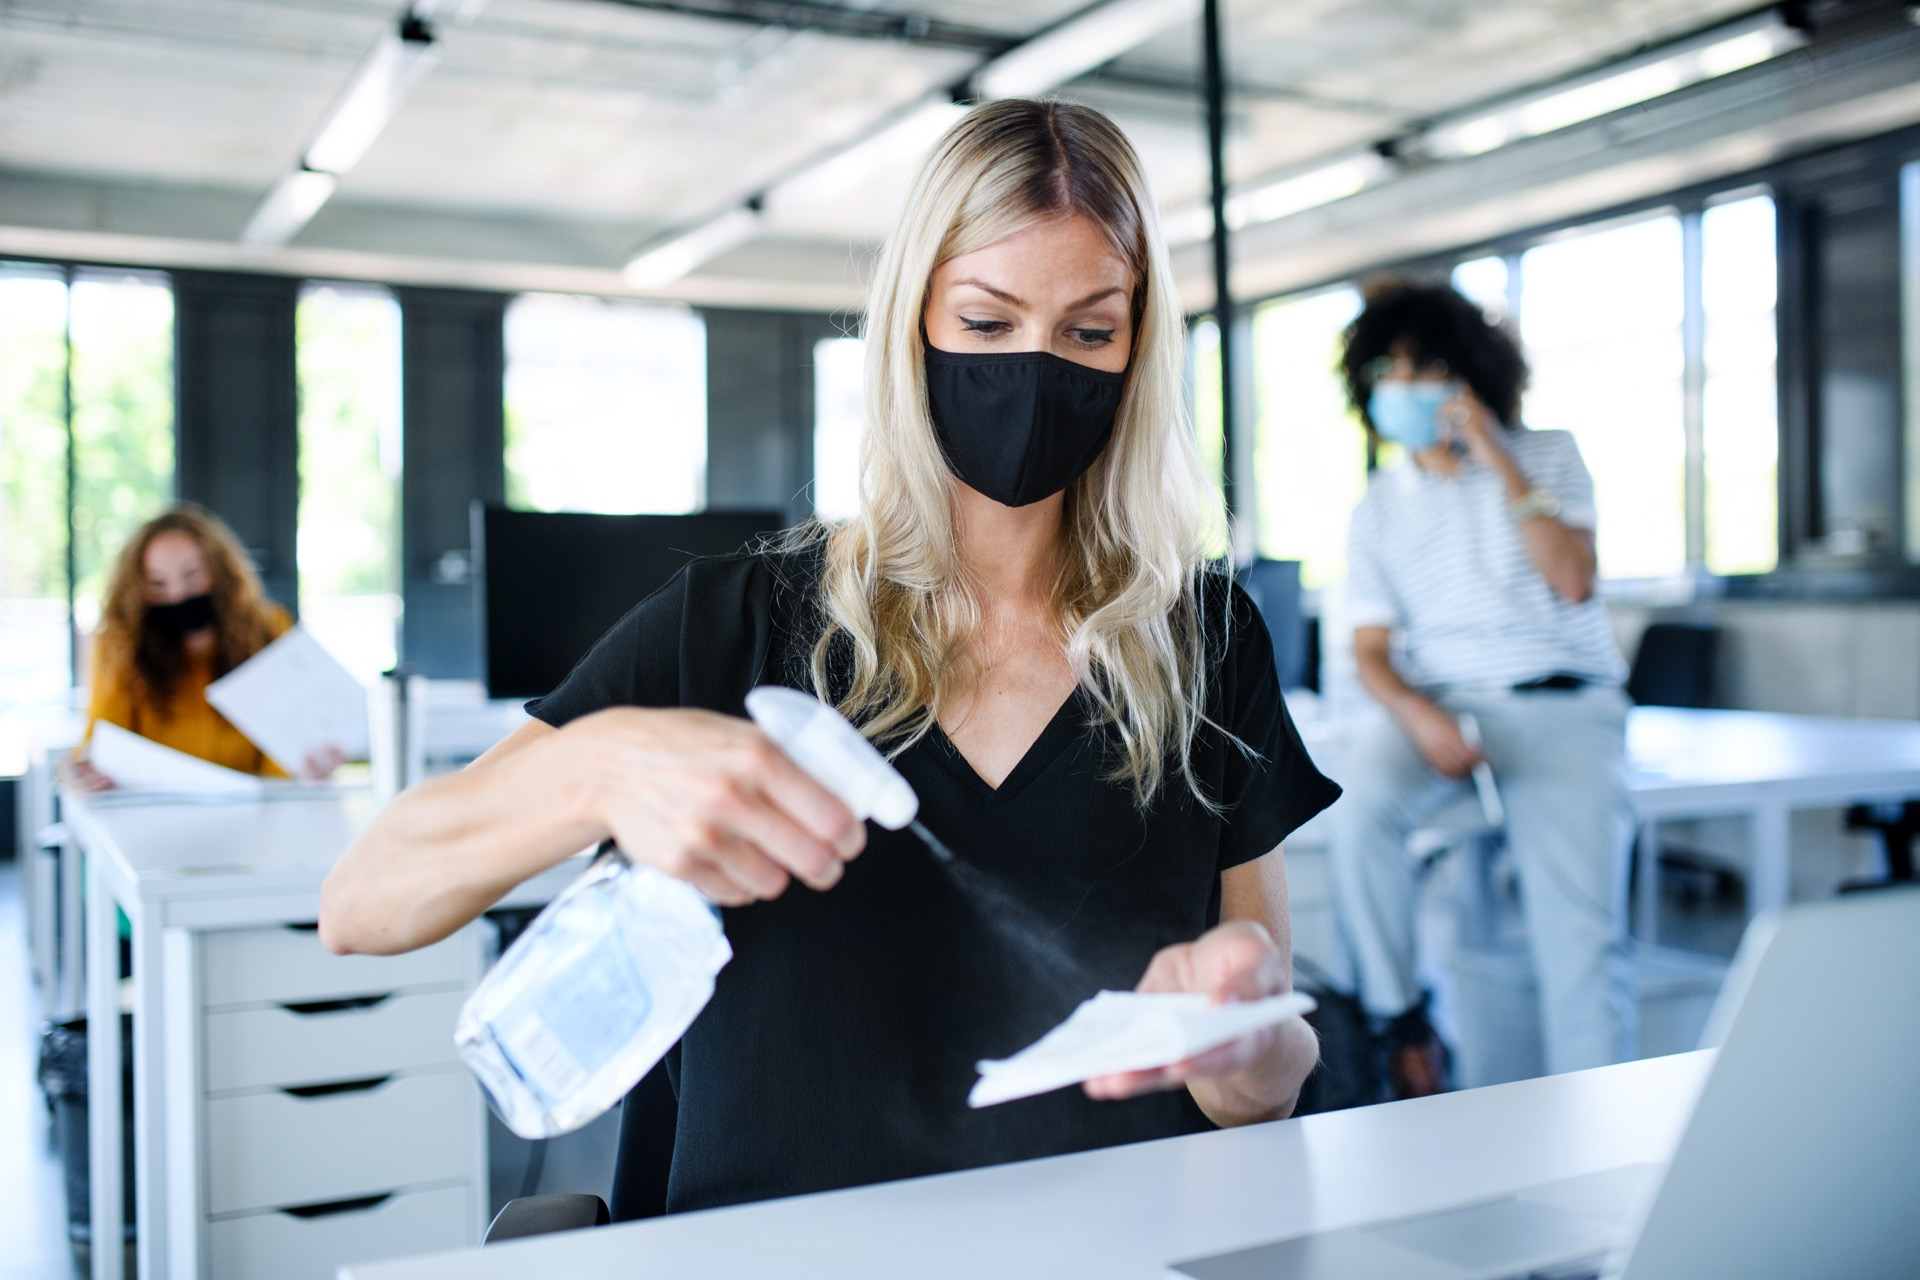 Office cleaning being done by young woman